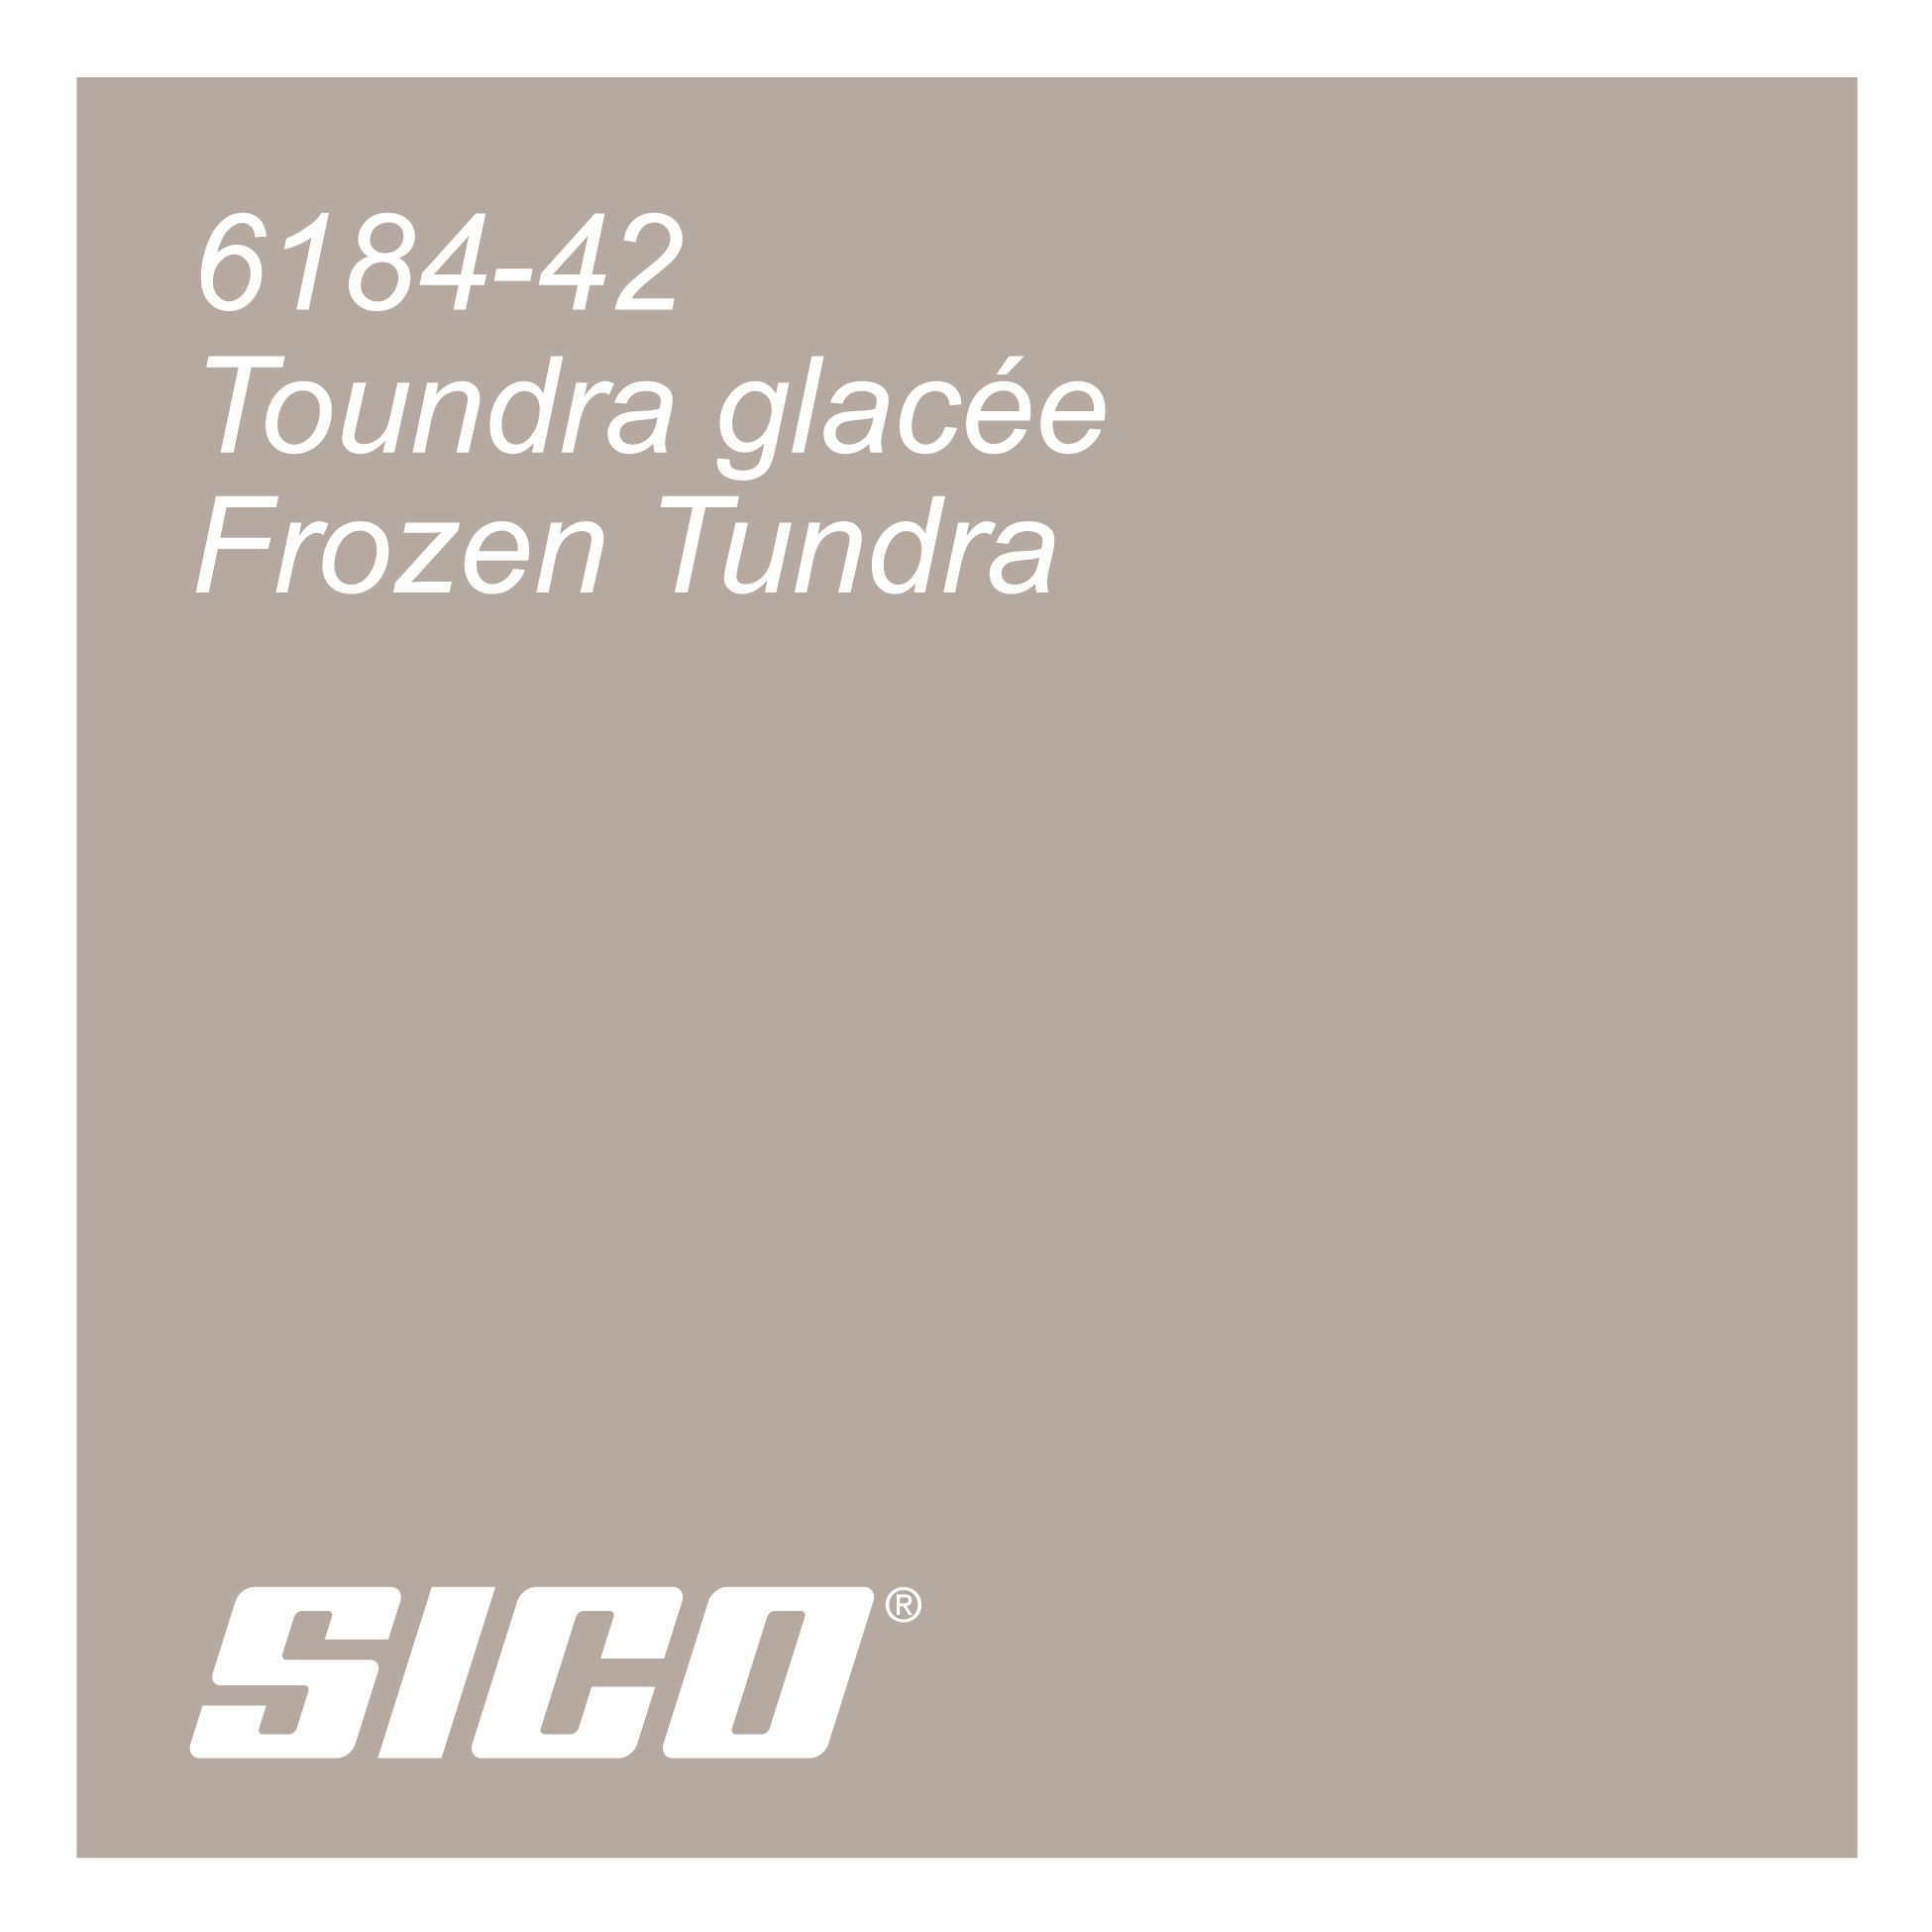 Frozen Tundra Paint Colour By Sico Paints Toundra Glacee